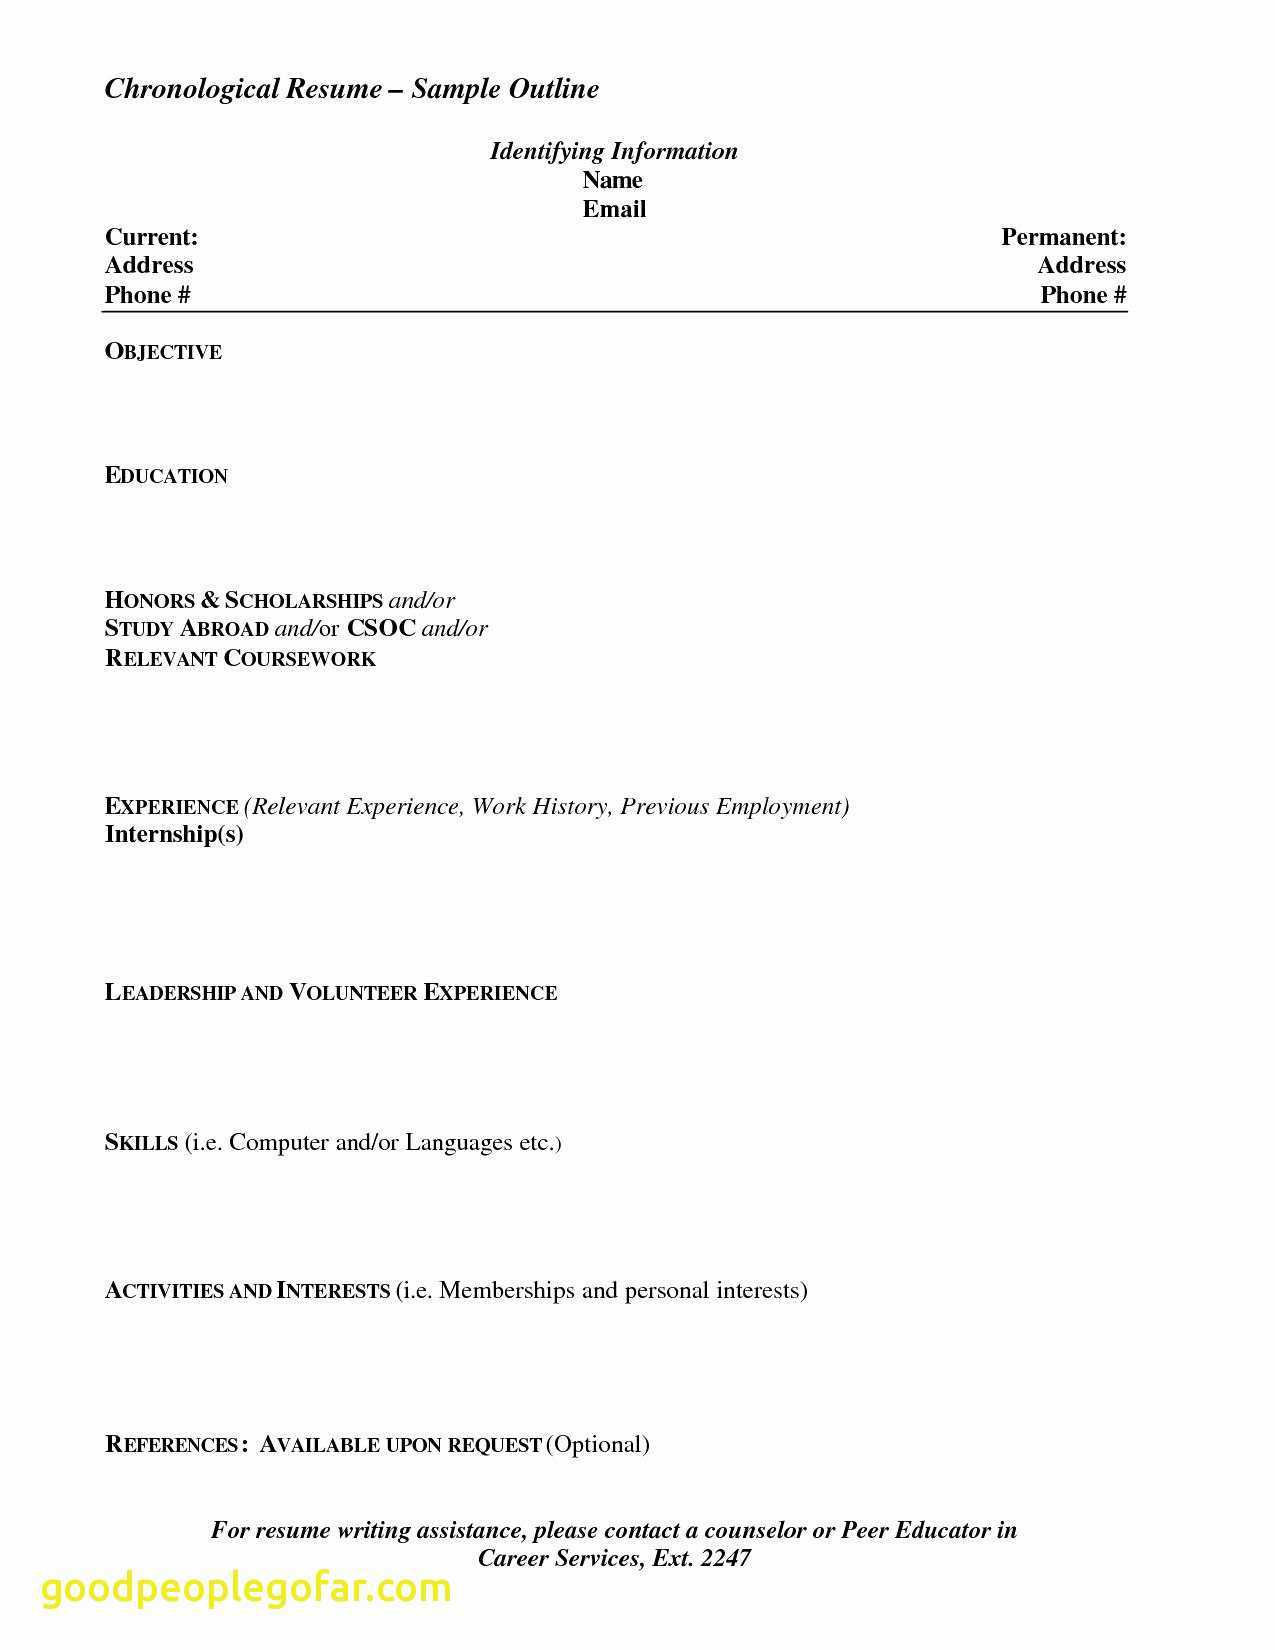 Teaching Budgeting Worksheets with Digital Resume – Template Of Business Resume Bud Proposal and Cv